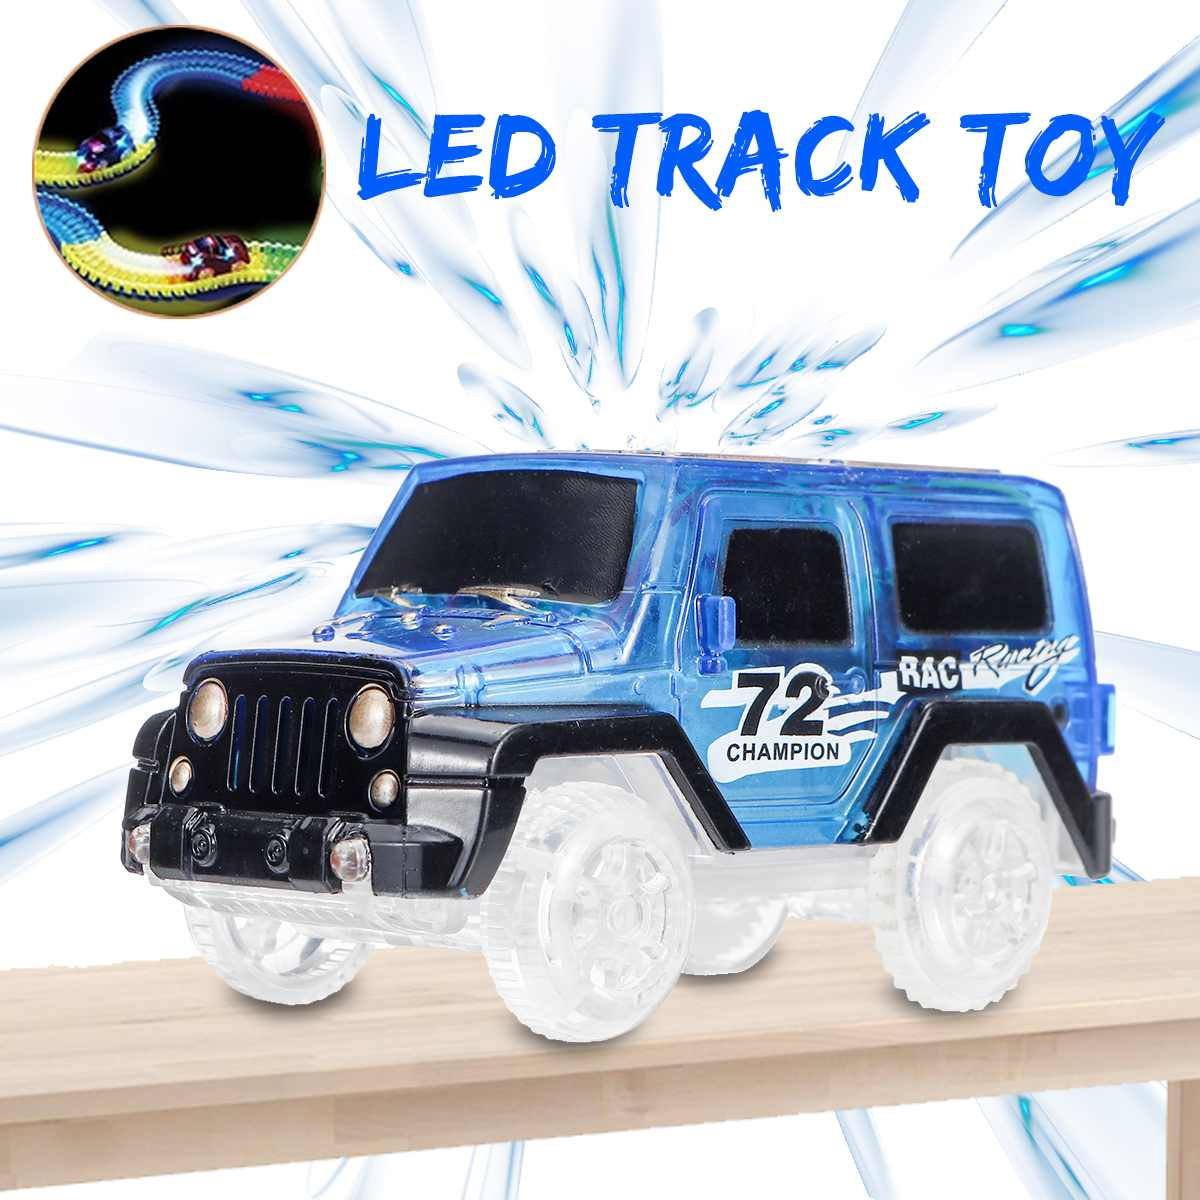 <font><b>Electronics</b></font> <font><b>Car</b></font> for Glow Track With LED Flashing Lights Glow Track Spare Parts <font><b>Car</b></font> <font><b>Toys</b></font> For Boys&Girls Children Gift image